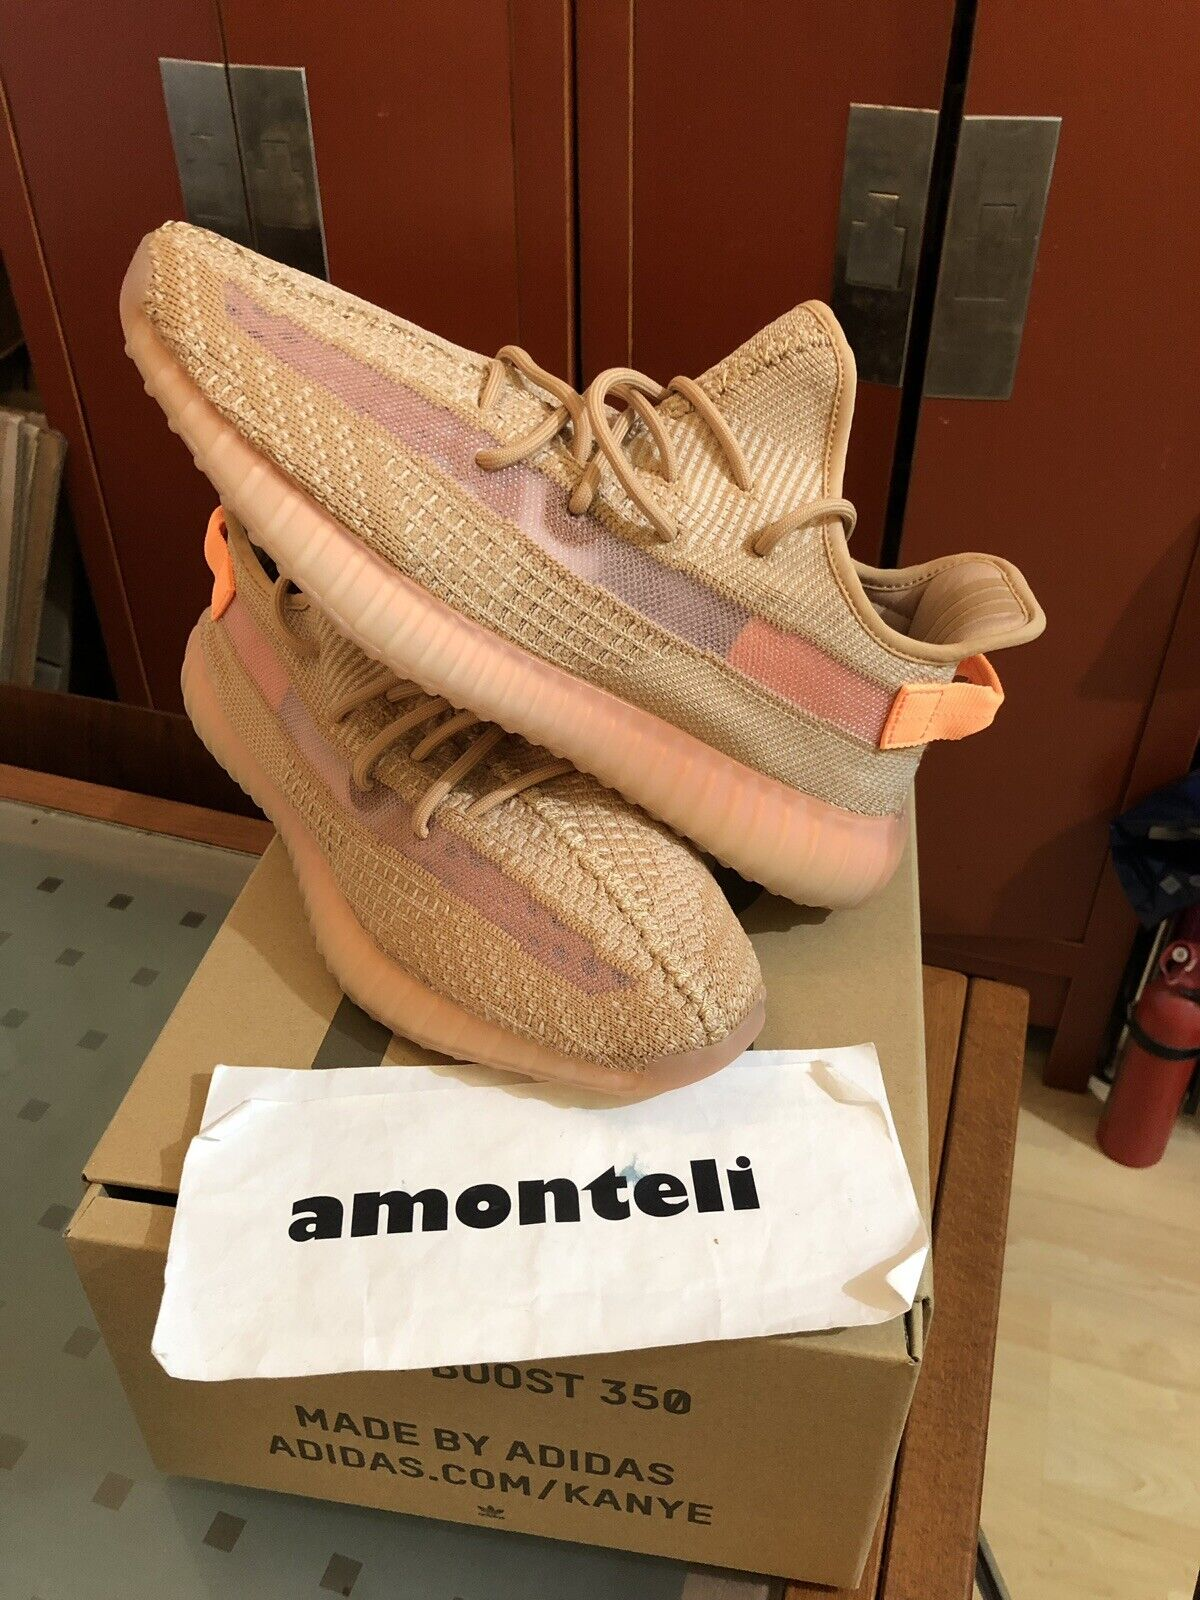 adidas Yeezy Boost 350 V2 Running Shoe for Men, Size 11 Clay